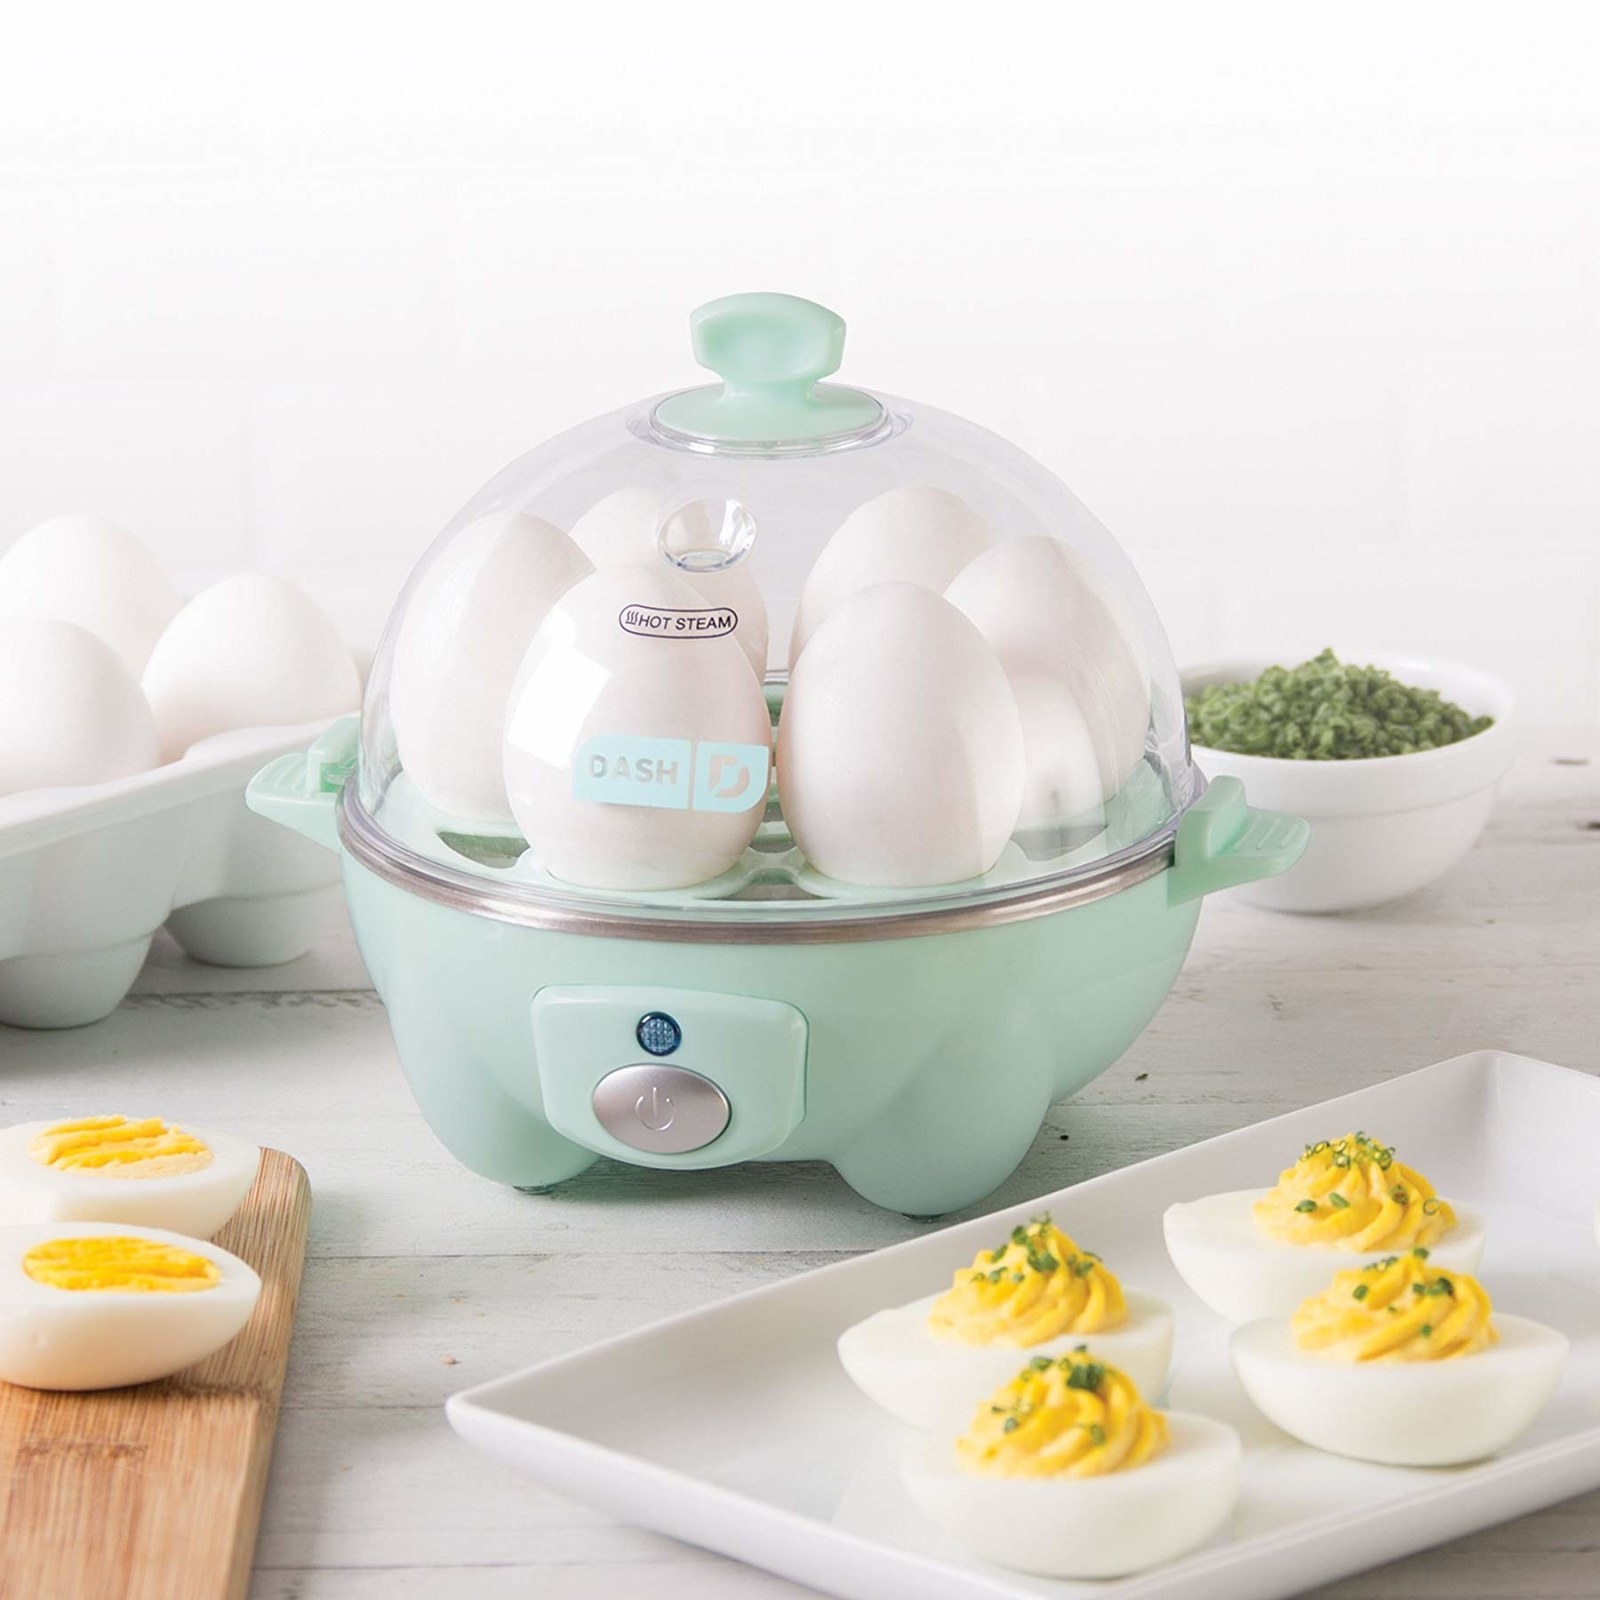 the egg cooker is sitting with six eggs inside of it. Sitting right next to it is a plate of deviled eggs and another boiled egg cut in half